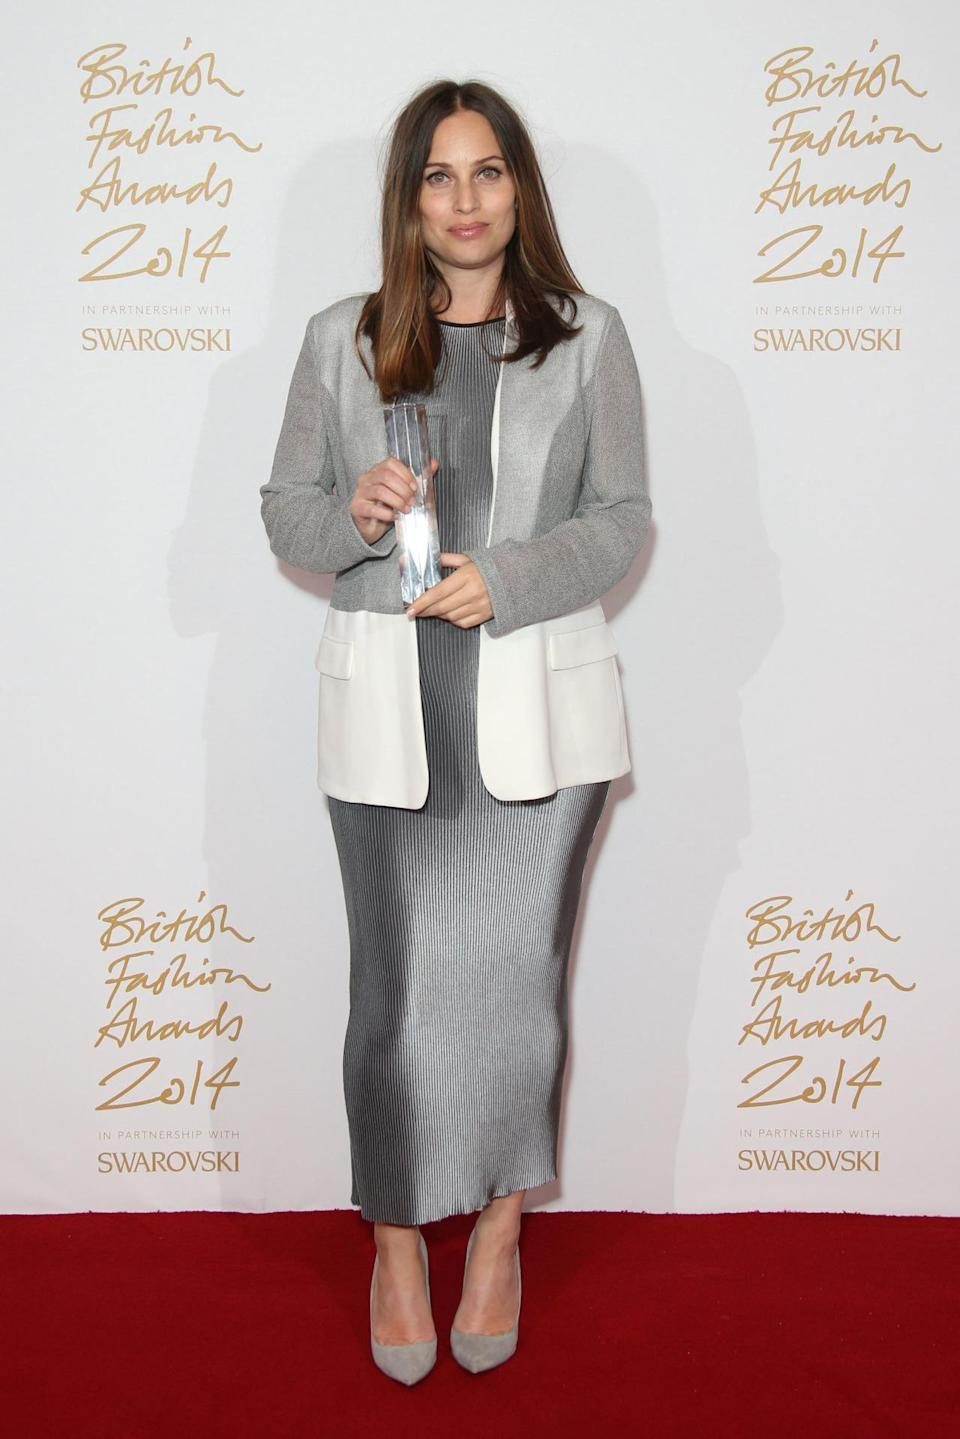 LONDON, ENGLAND - DECEMBER 01: Designer Prism poses in the winners room with the Emerging Accessory Designer Award at the British Fashion Awards at London Coliseum on December 1, 2014 in London, England. (Photo by Mike Marsland/WireImage)